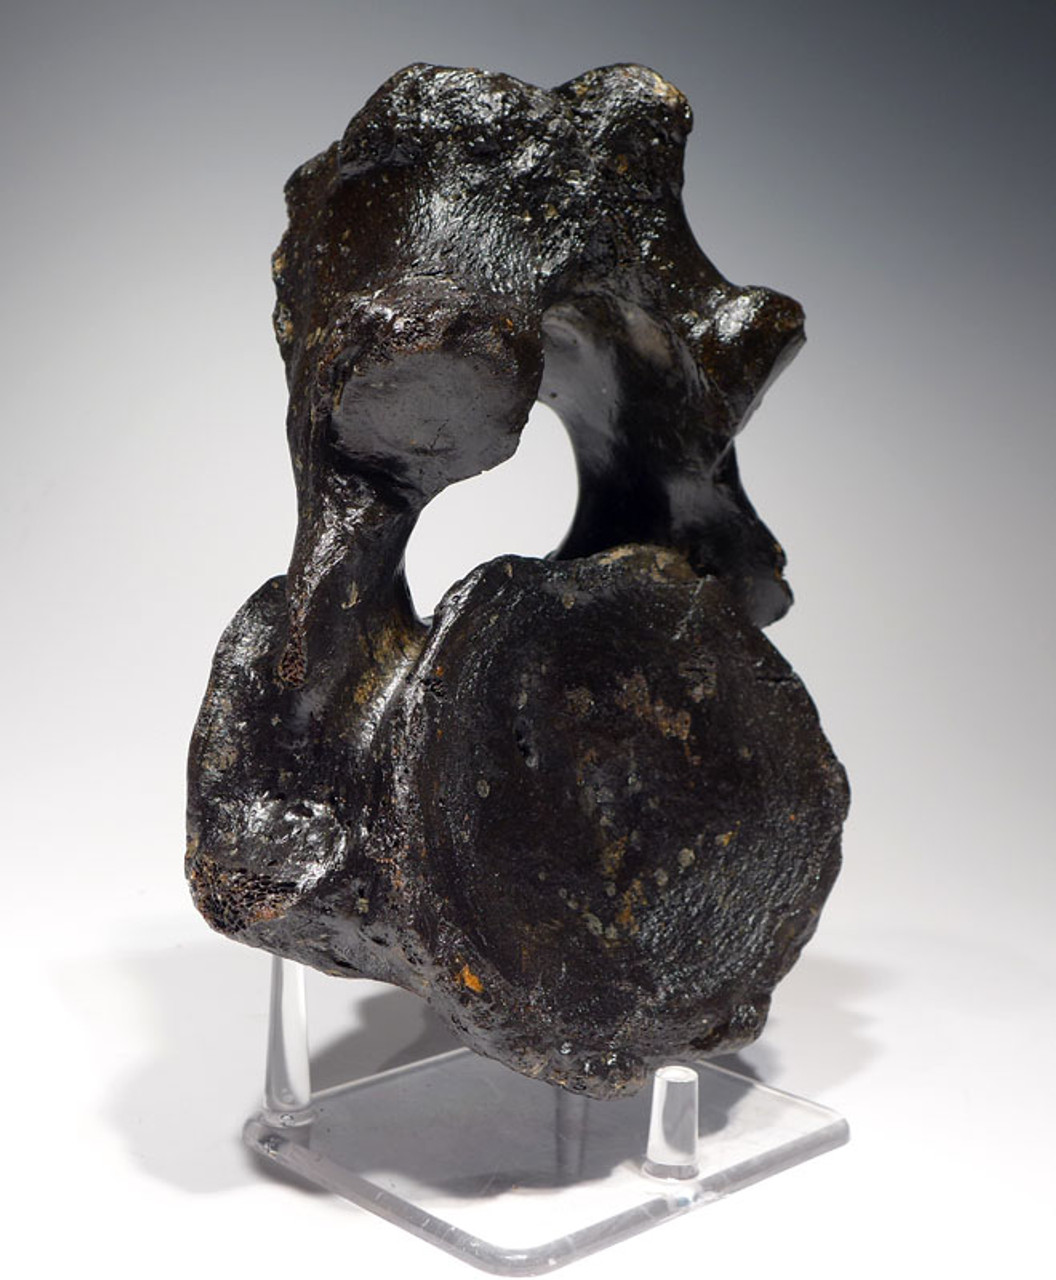 LMX122 - INTACT WOOLLY MAMMOTH AXIS NECK VERTEBRA WITH SUPREME PRESERVATION